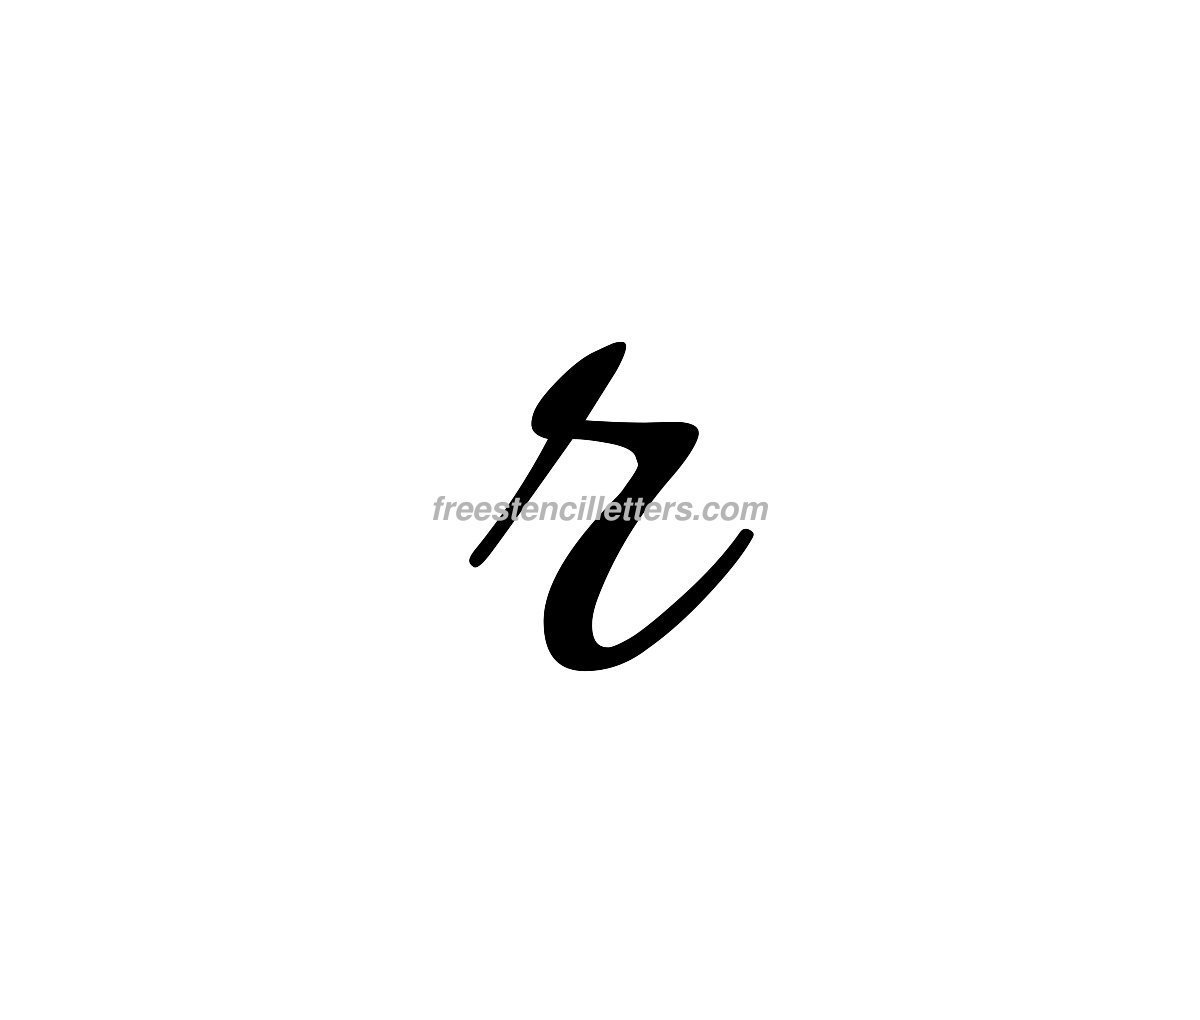 Fancy calligraphy lowercase letters tattoo